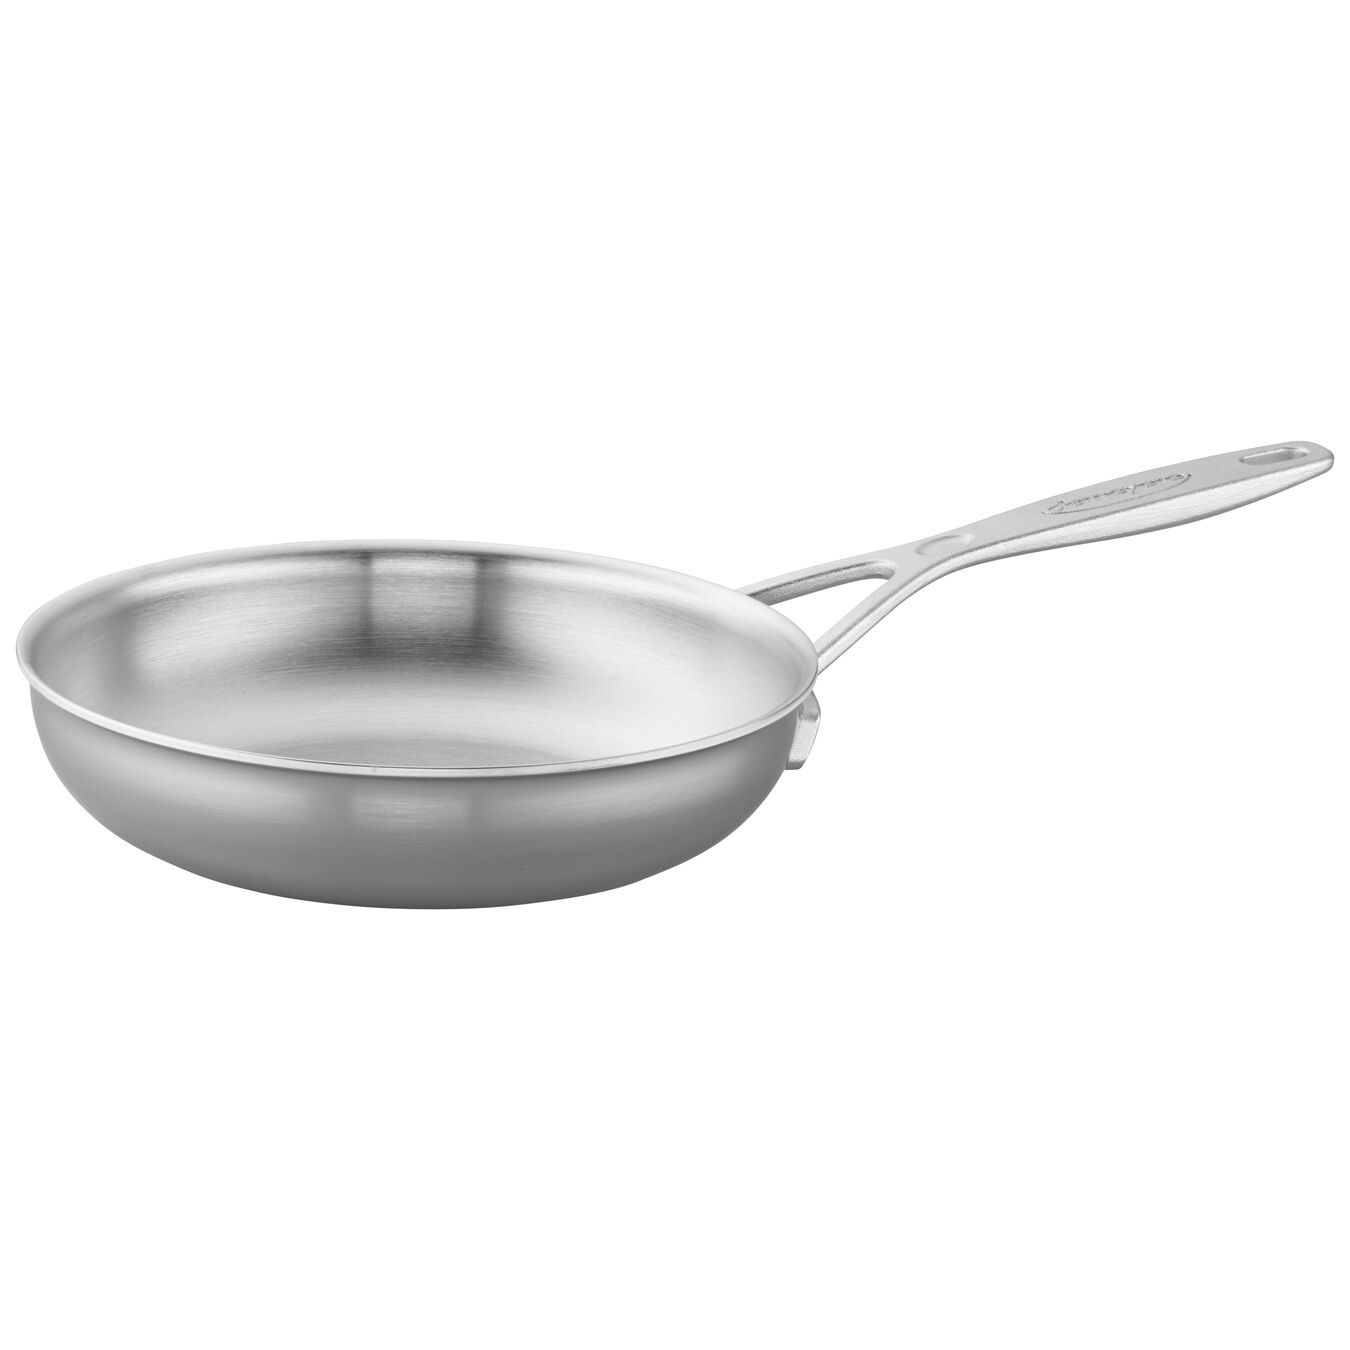 8-inch, 18/10 Stainless Steel, Frying pan,,large 4